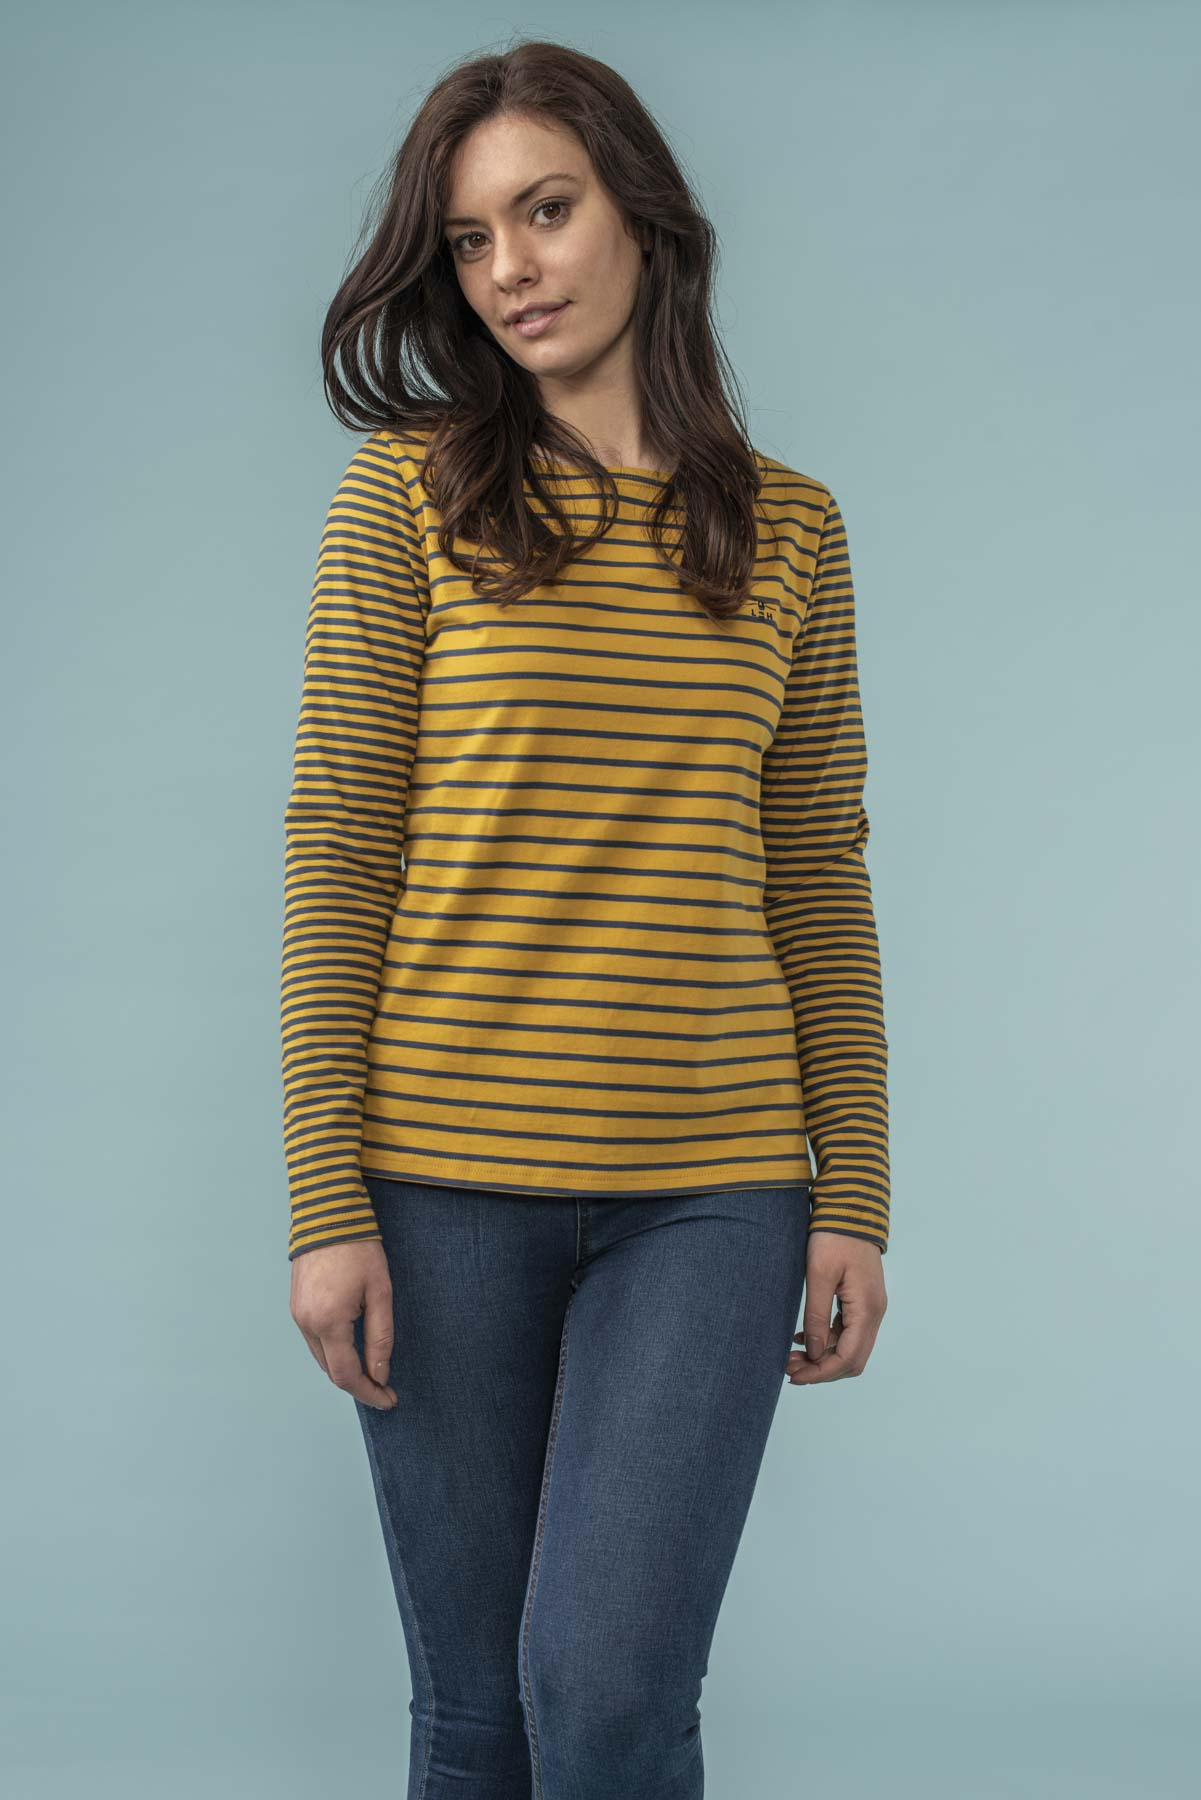 Causeway Breton Top. Long Sleeve Yellow Stripes | Lighthouse